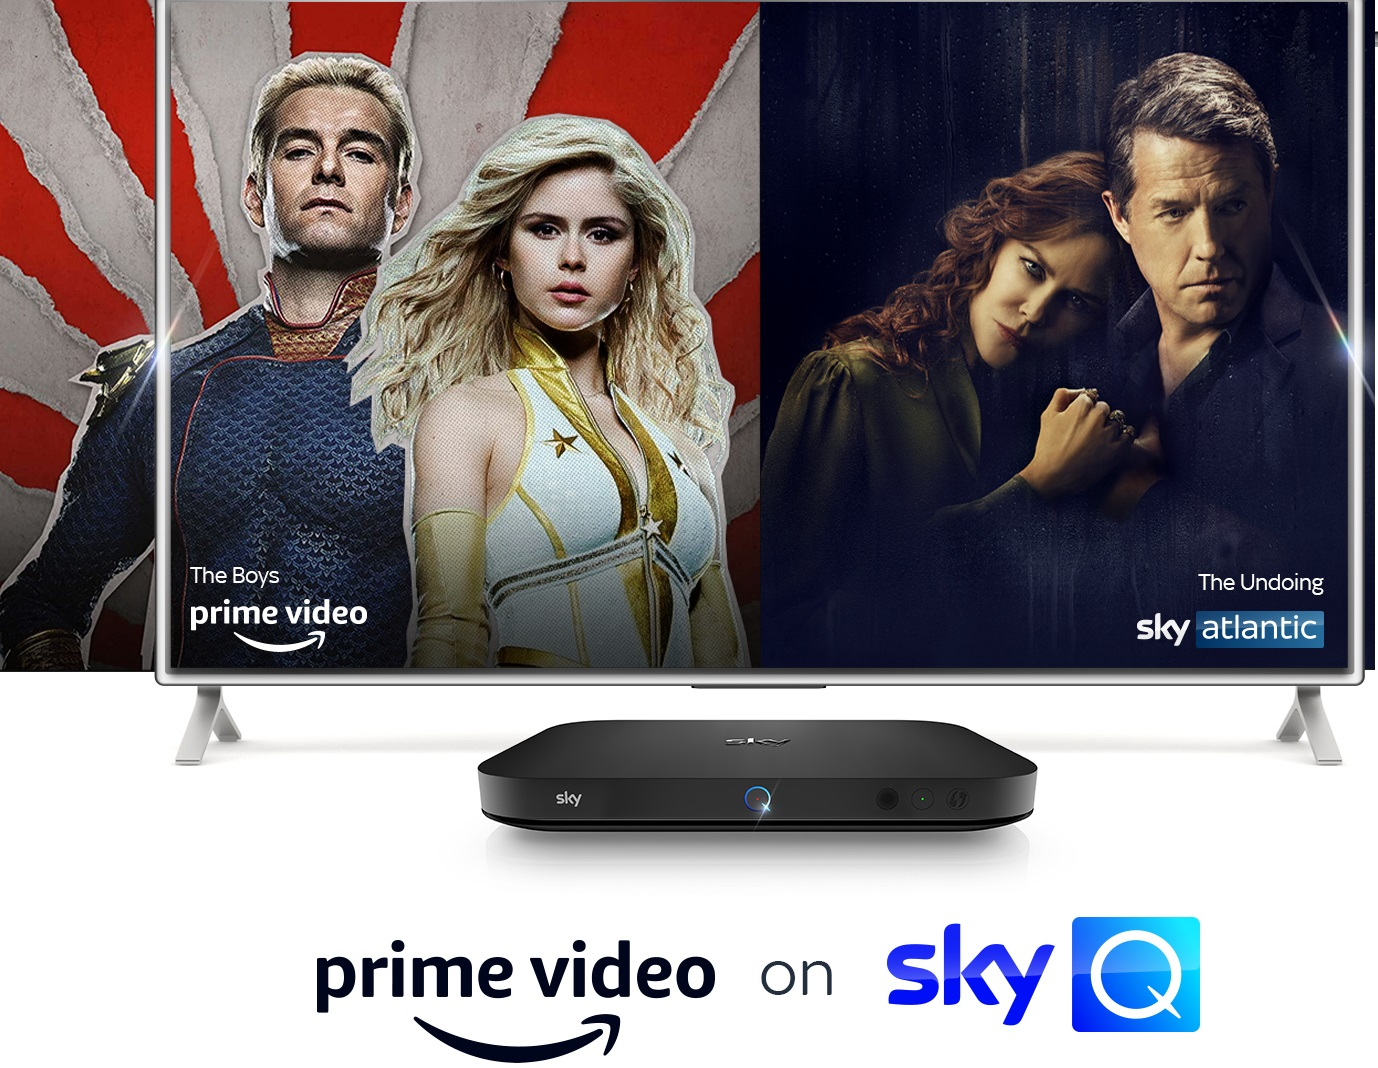 Amazon Prime Video and Sky are now partners